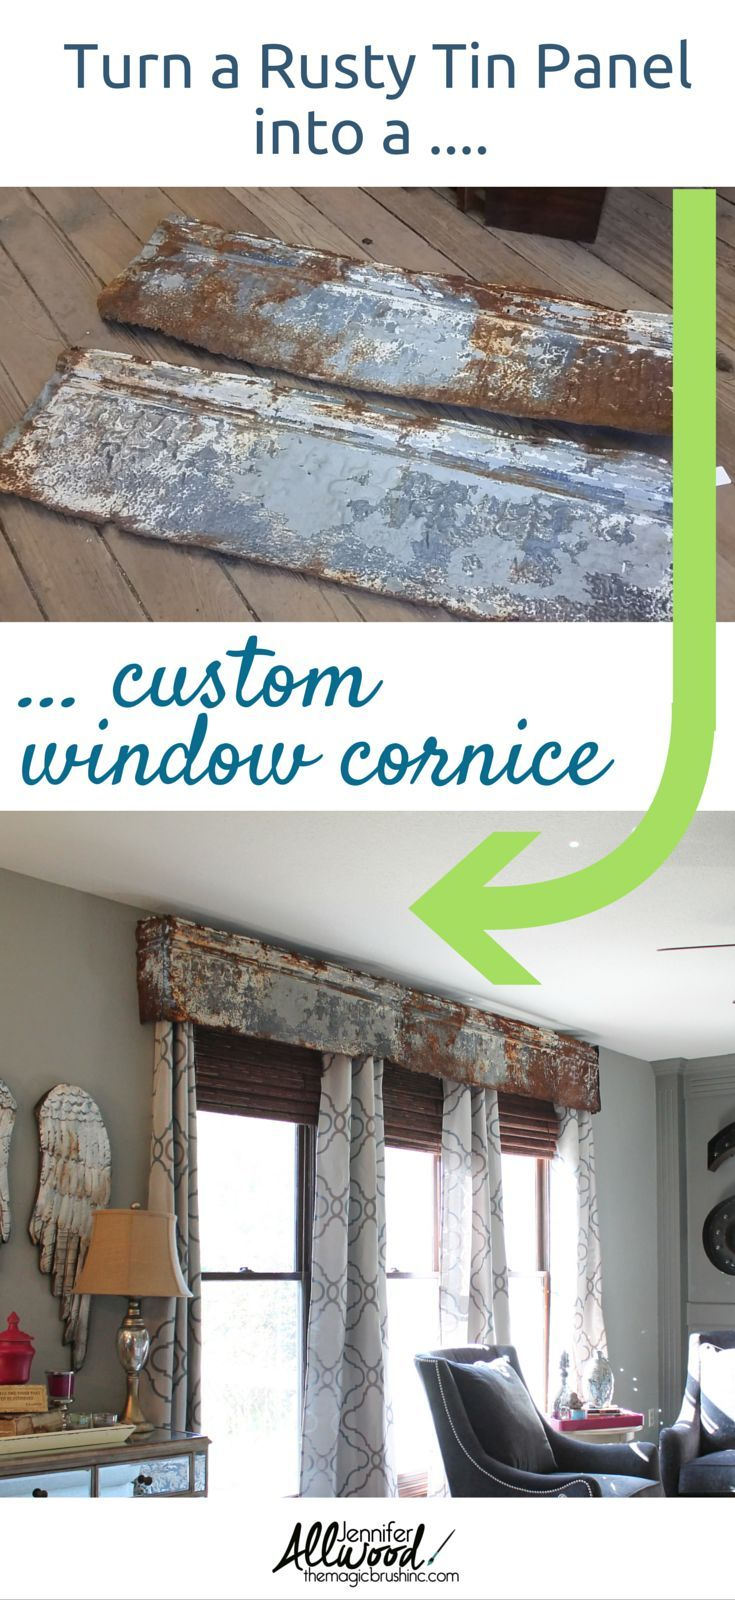 How to's : Add texture to your interior! How to repurpose a rusty tin panel into a window cornice. Design tips from garage sale finds by theMagicBrushinc.com